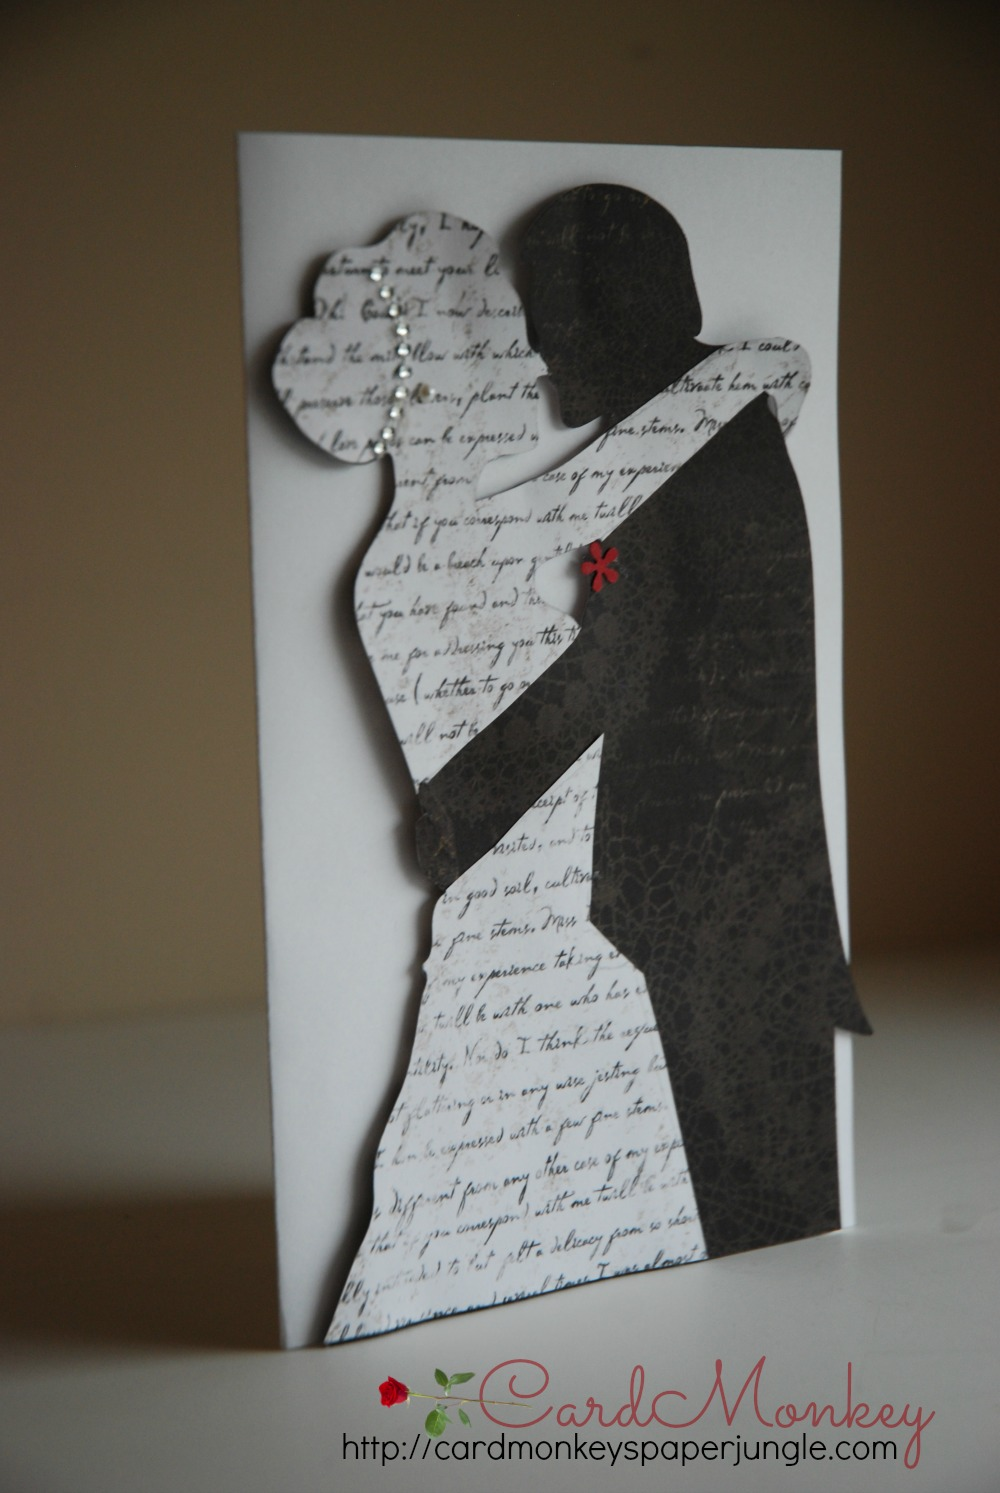 This wedding card is one of the cards Im making to trade.